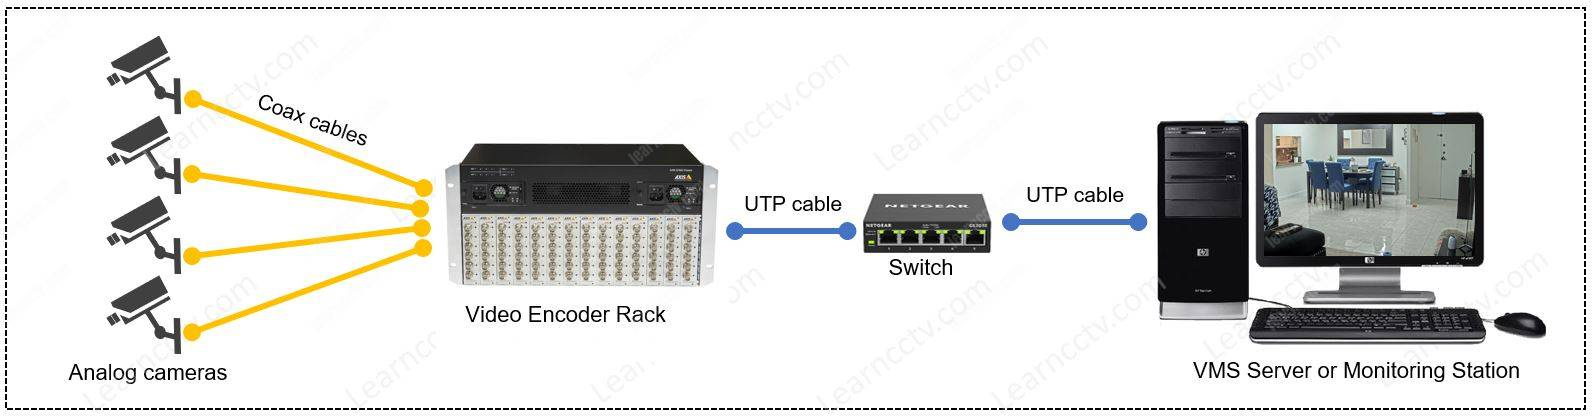 Rack mounted encoder for up to 84 cameras